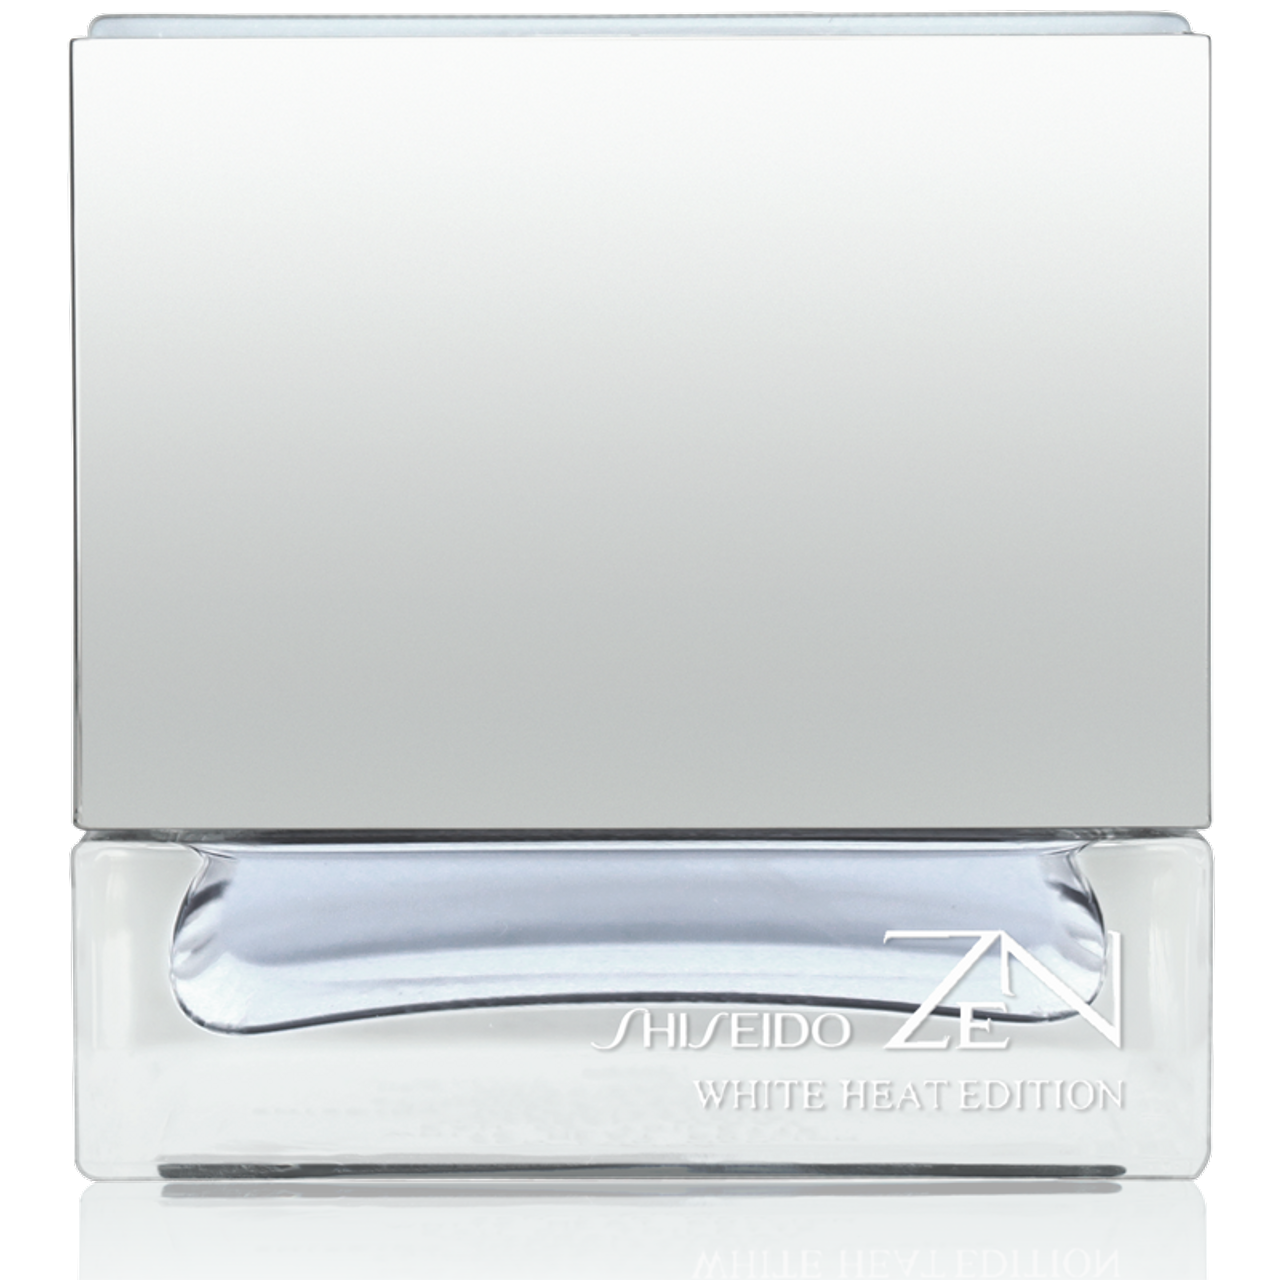 Shiseido Zen White Heat Edition Man EdT 50ml